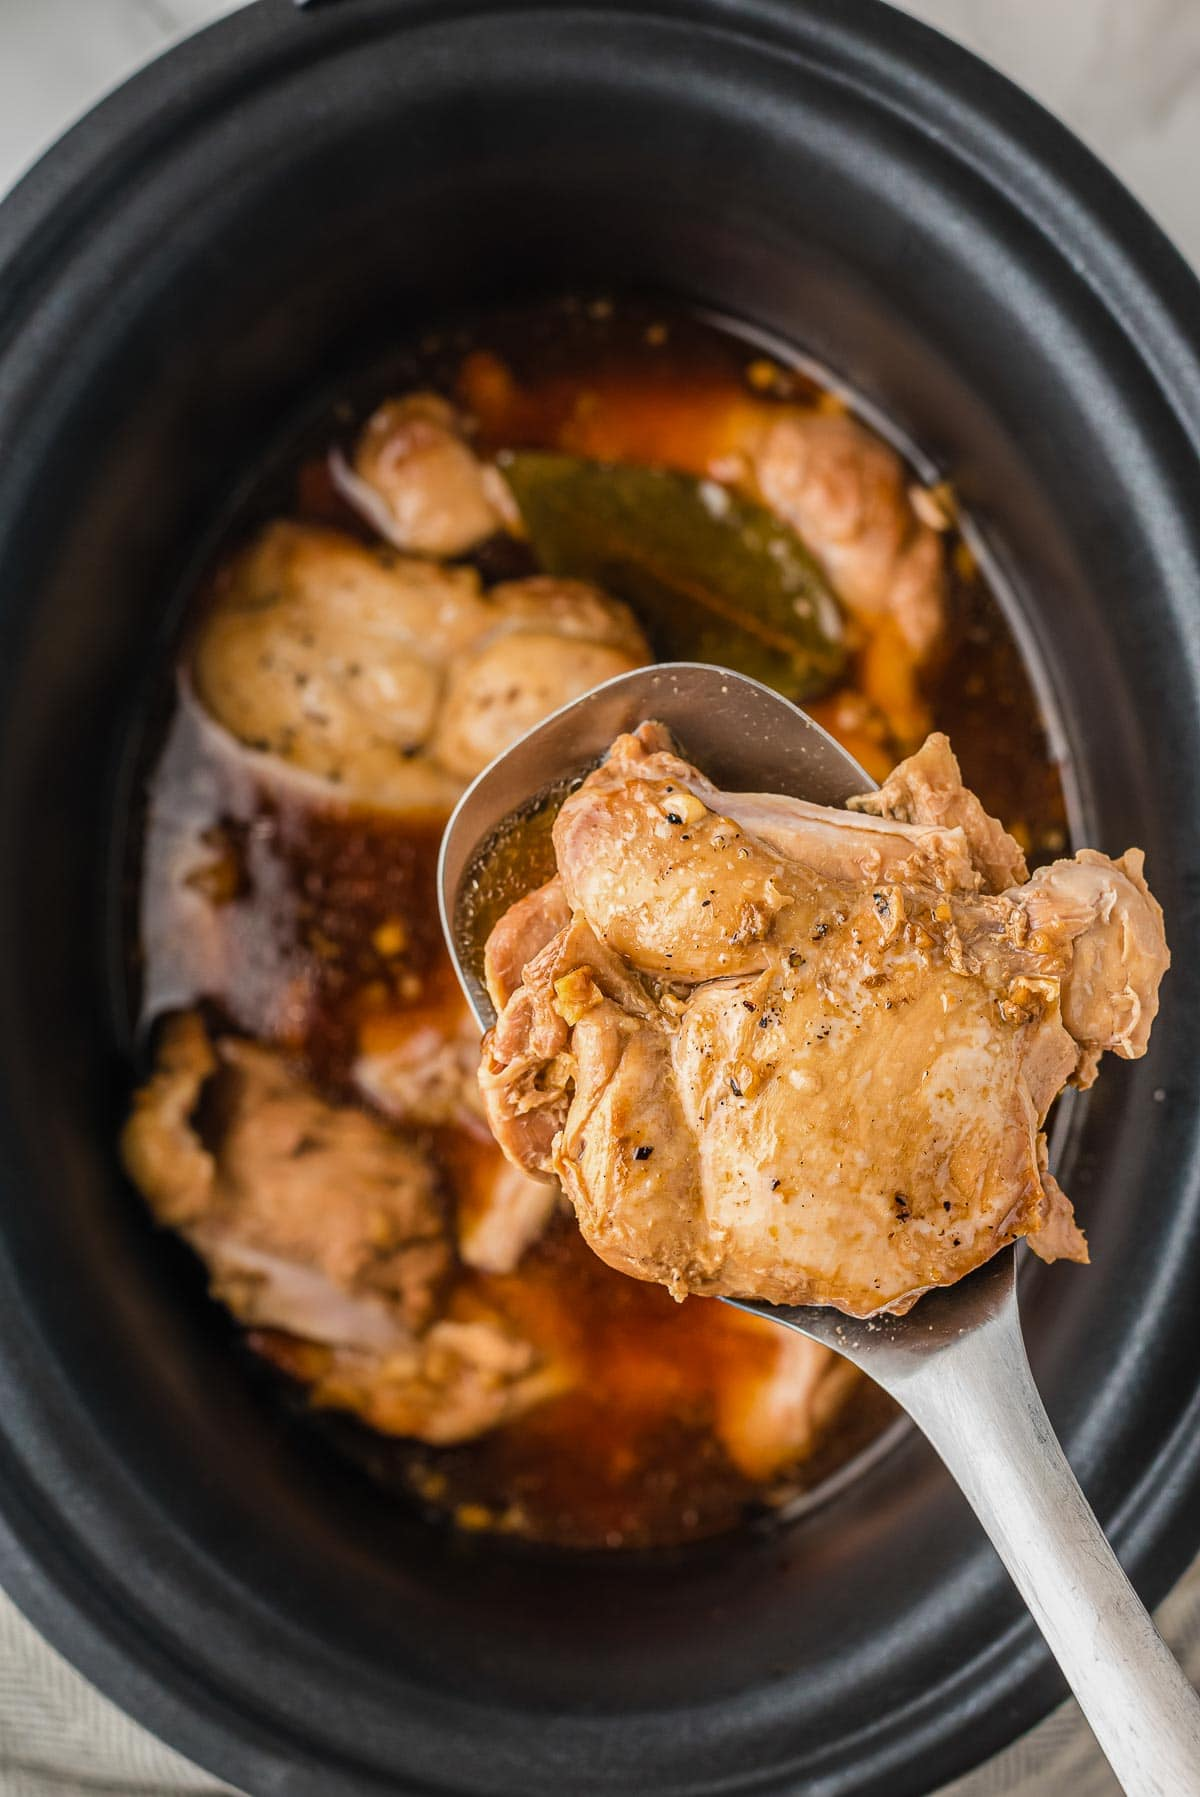 chicken adobo cooked in slow cooker on spoon